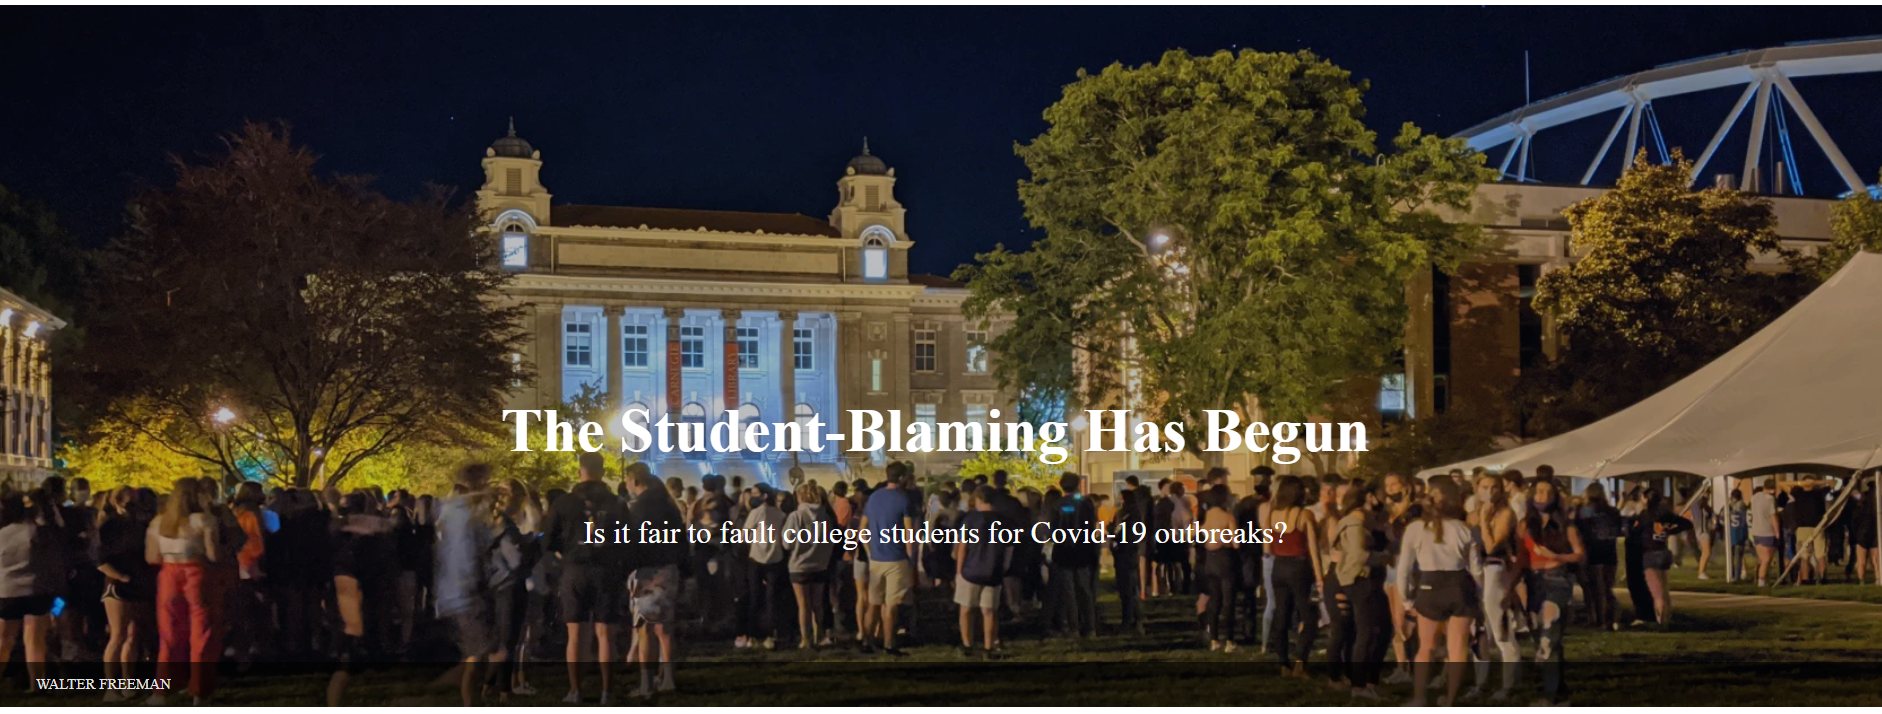 headline--student-blaming for spread of COLVIE-19 question and image of large student gather on a college campus